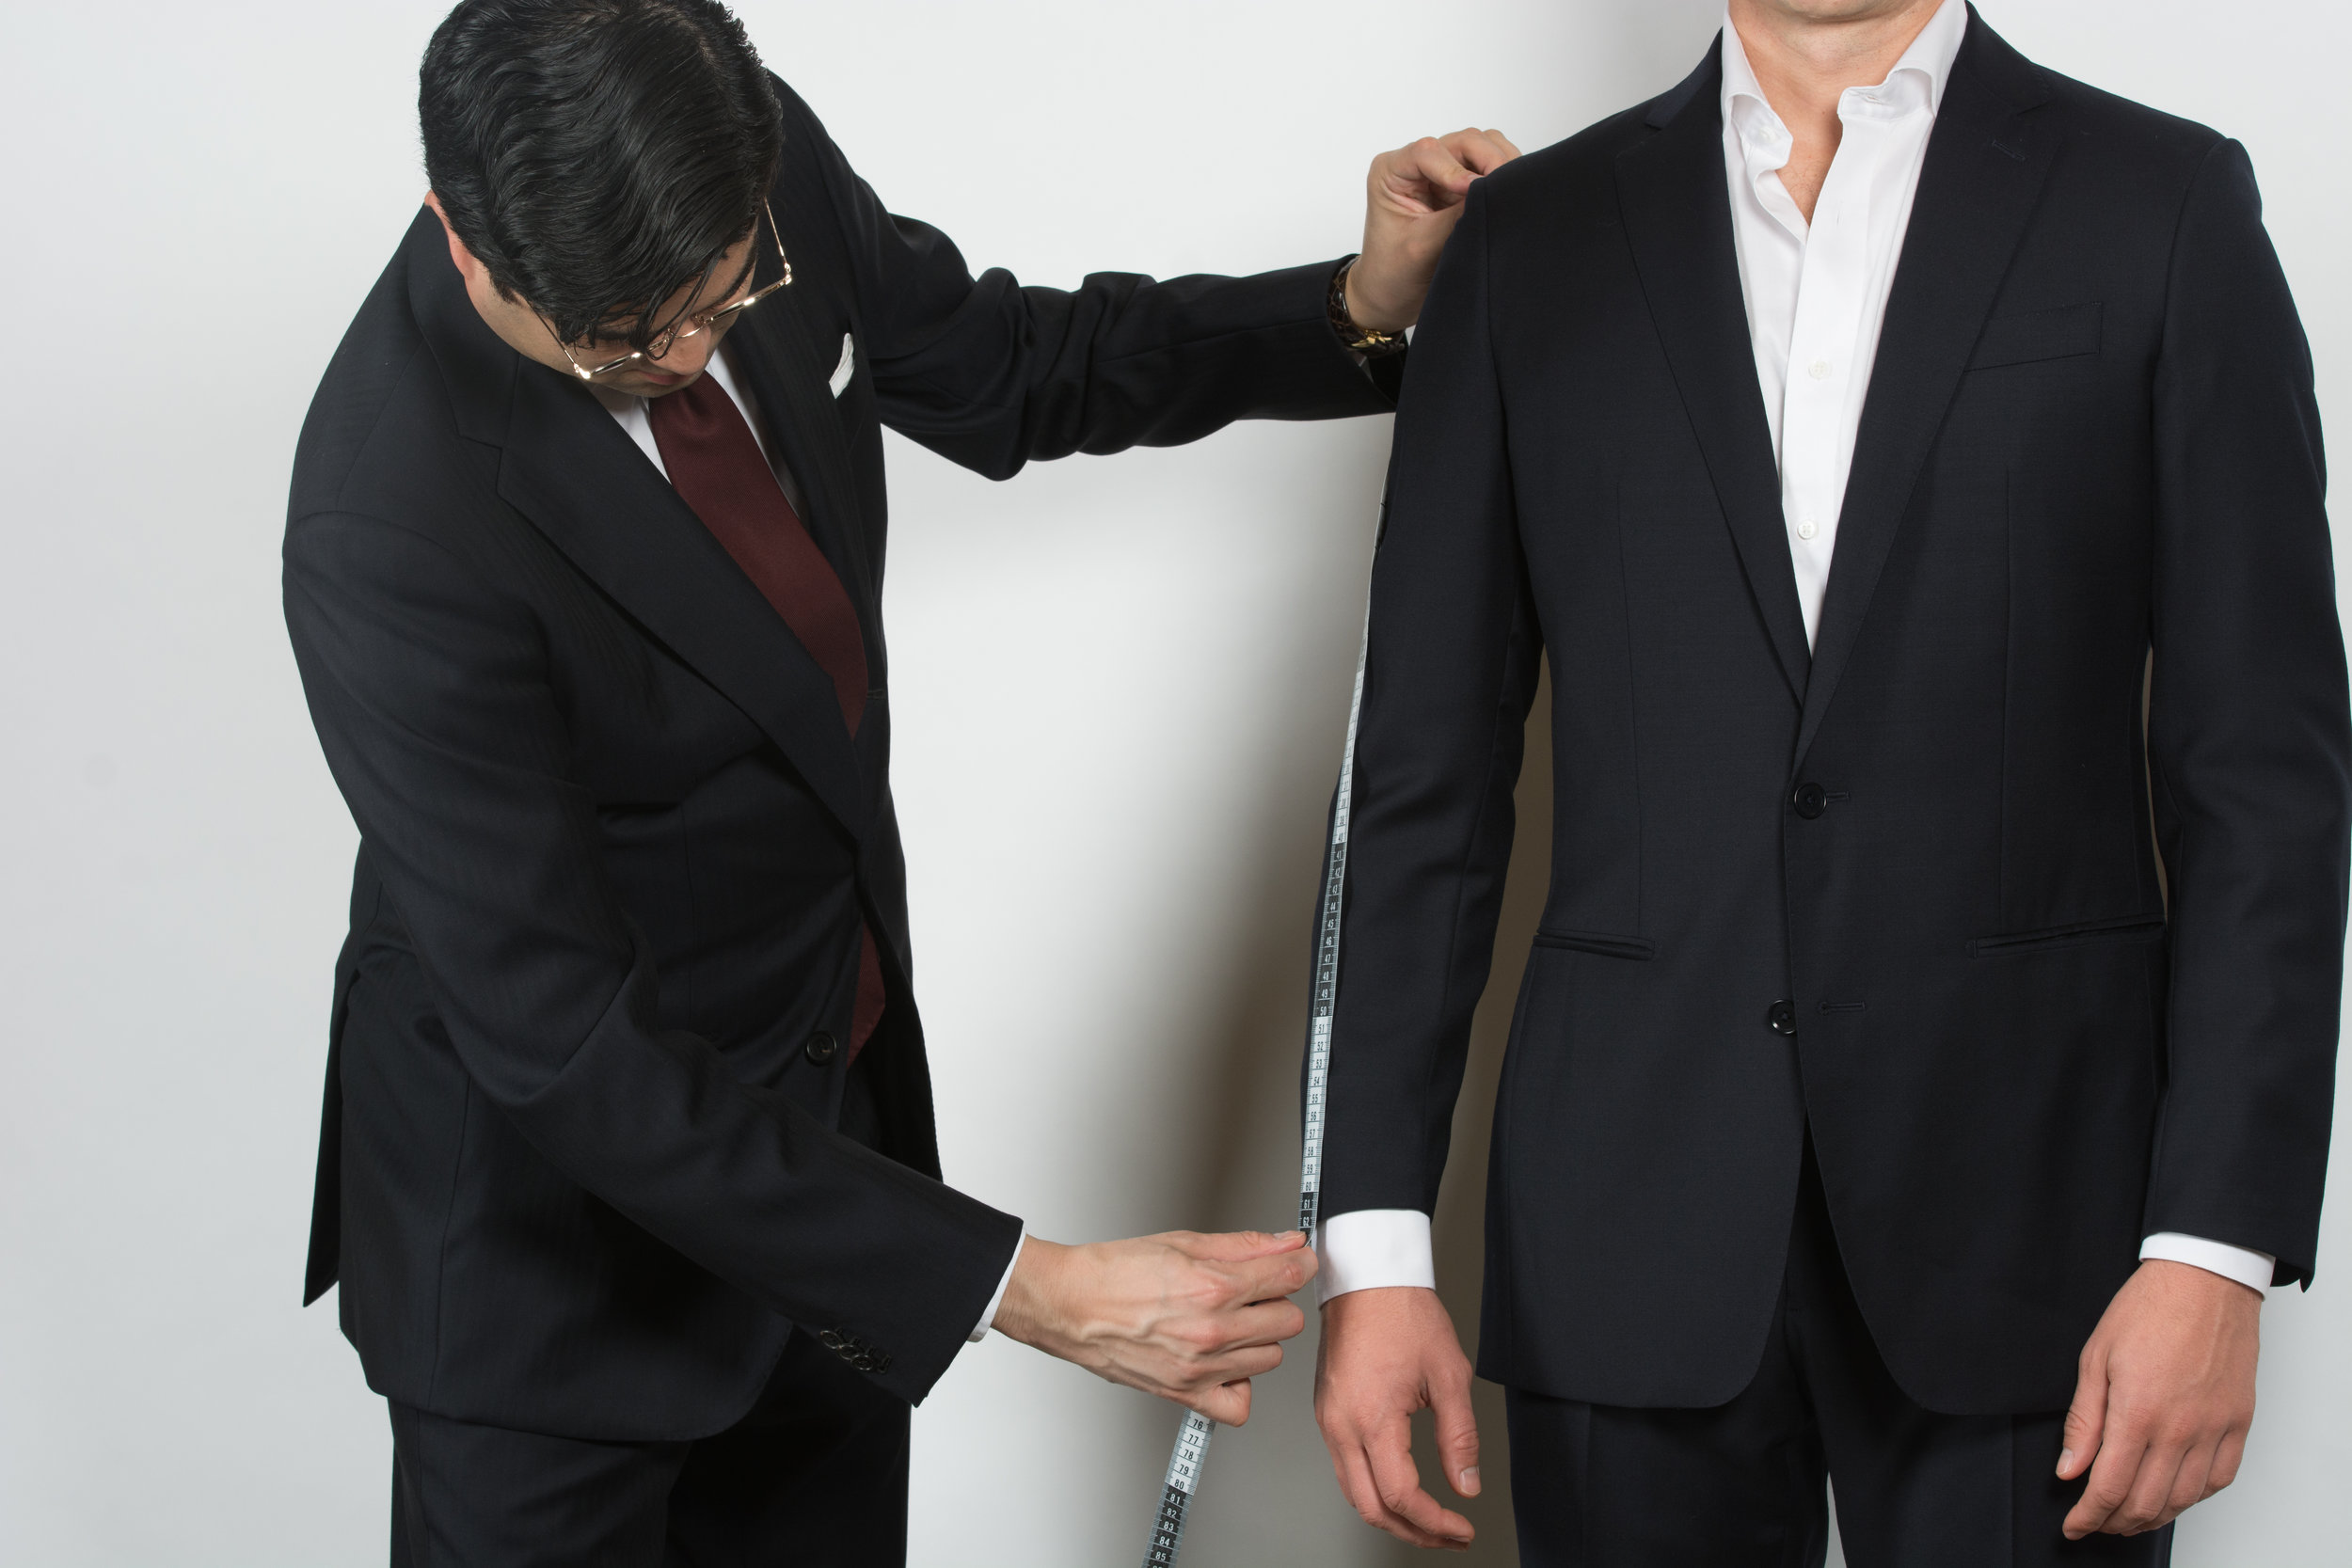 We go to you and measure you for your suit.